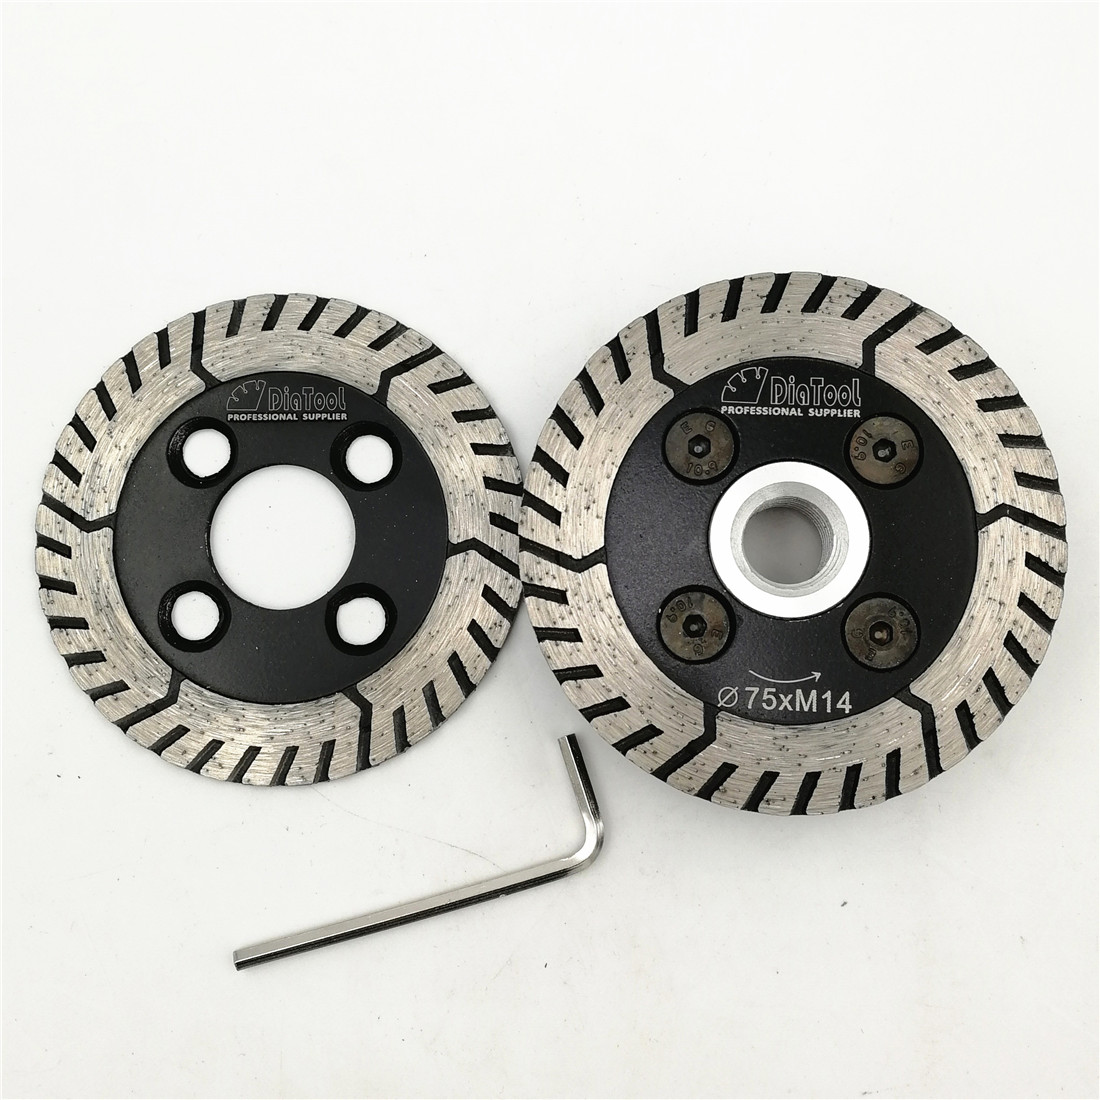 цена на DIATOOL 1pc 75mm Diamond Cutting Grindng Disc with flange and 1pc blade Diameter 3 Dual Saw Blade For Granite Marble Concrete